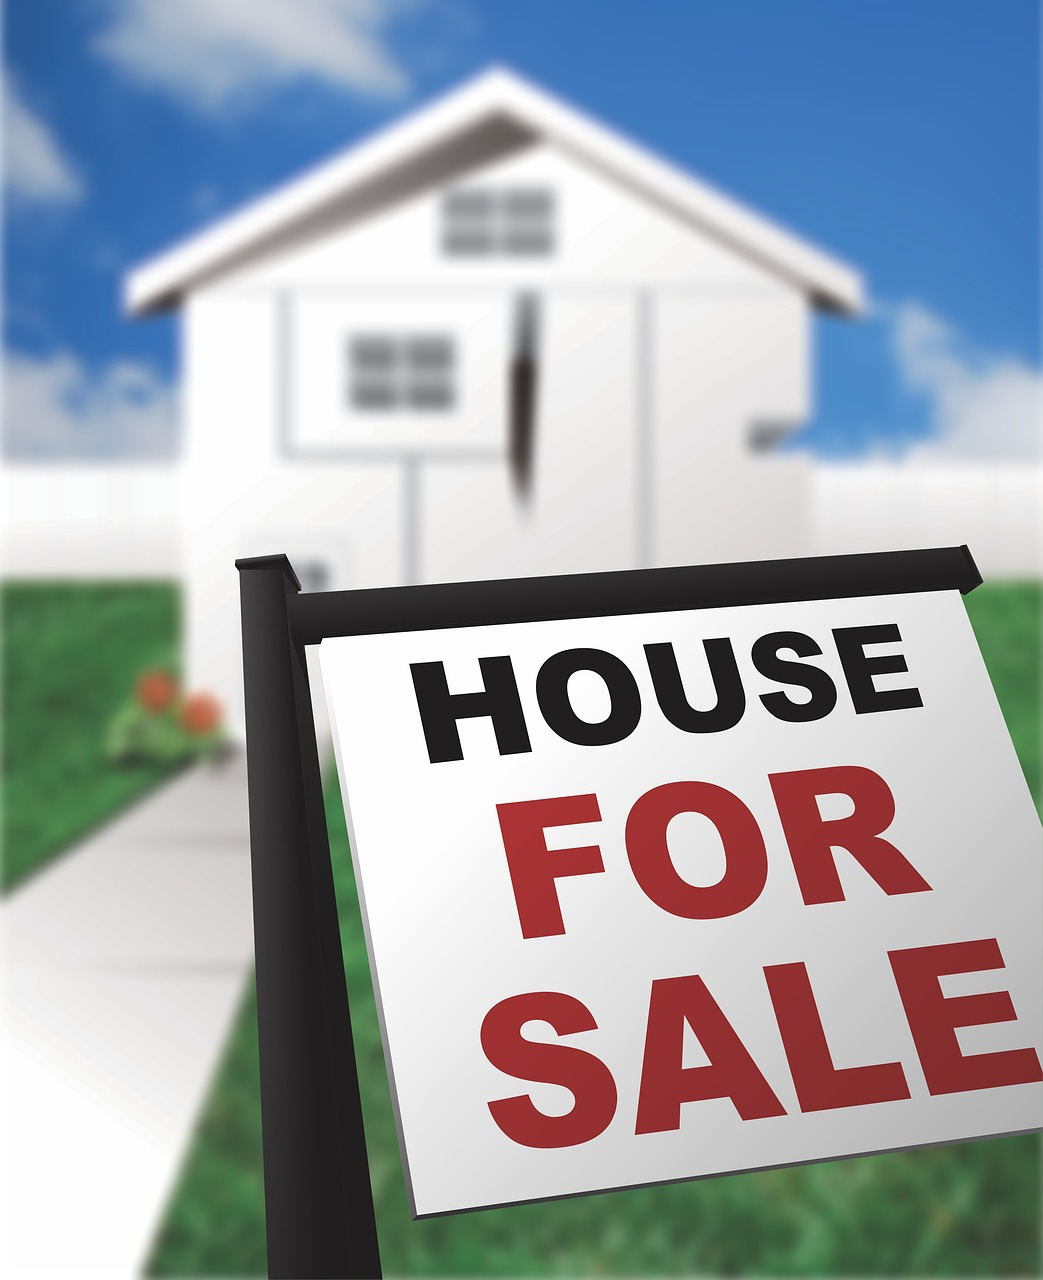 House for a sale sign - When is the right time to sell your home?